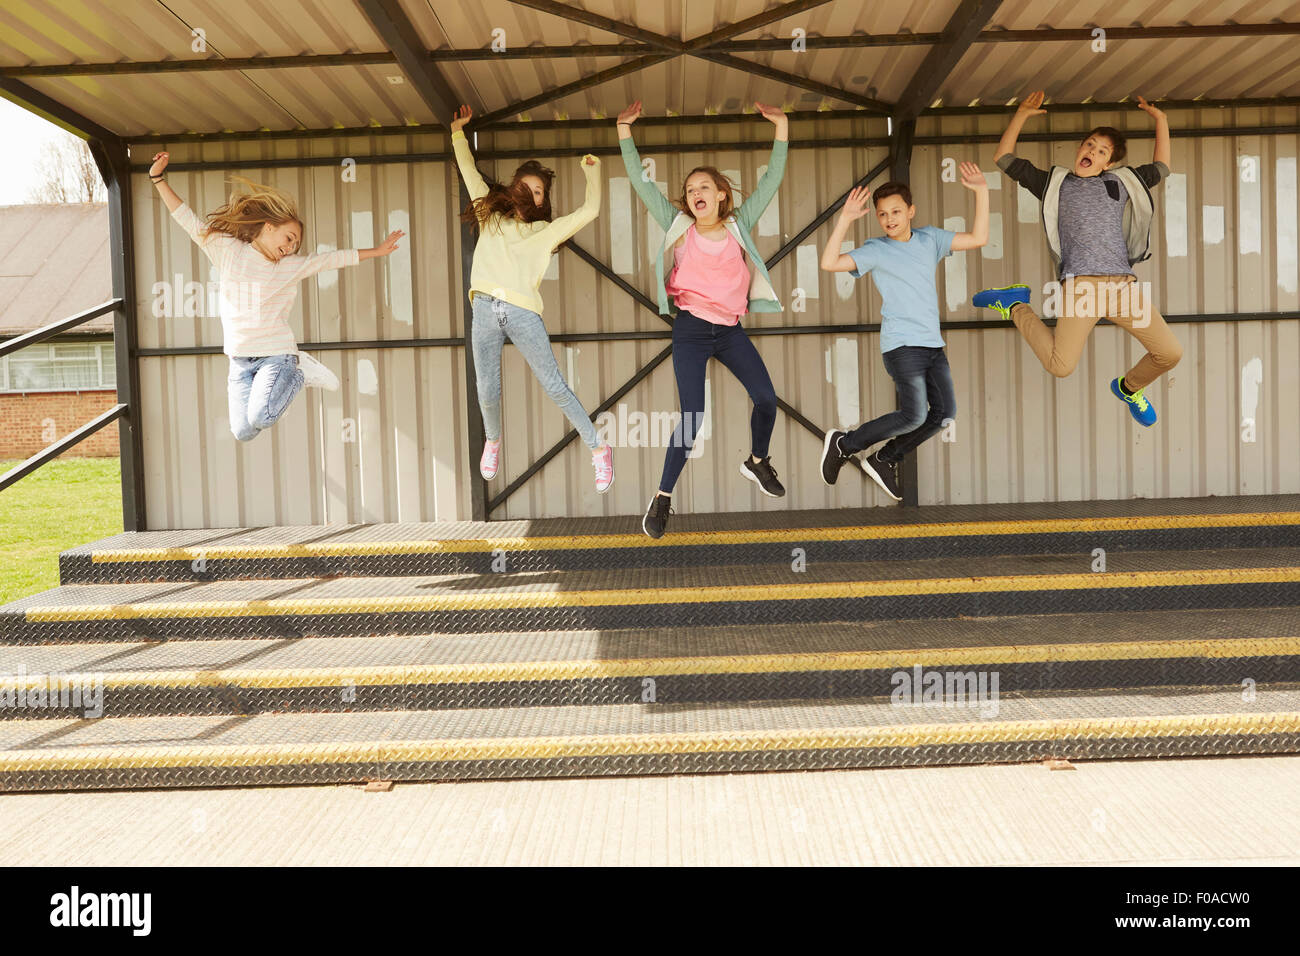 Five boys and girls jumping mid air in stadium stand - Stock Image